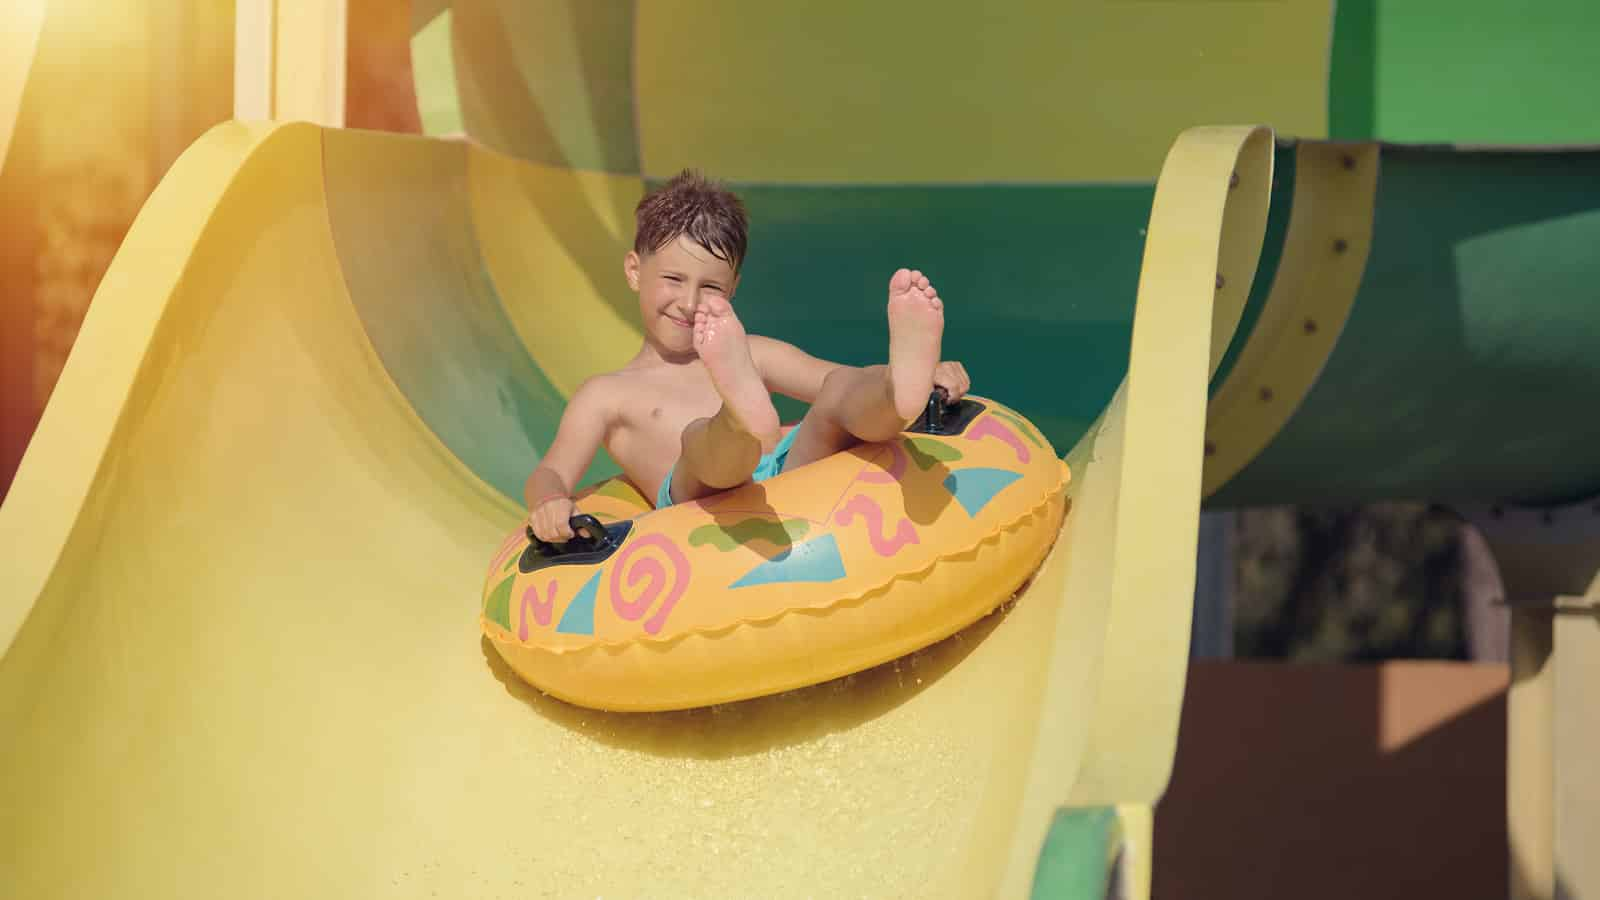 Boy having fun on the water slide